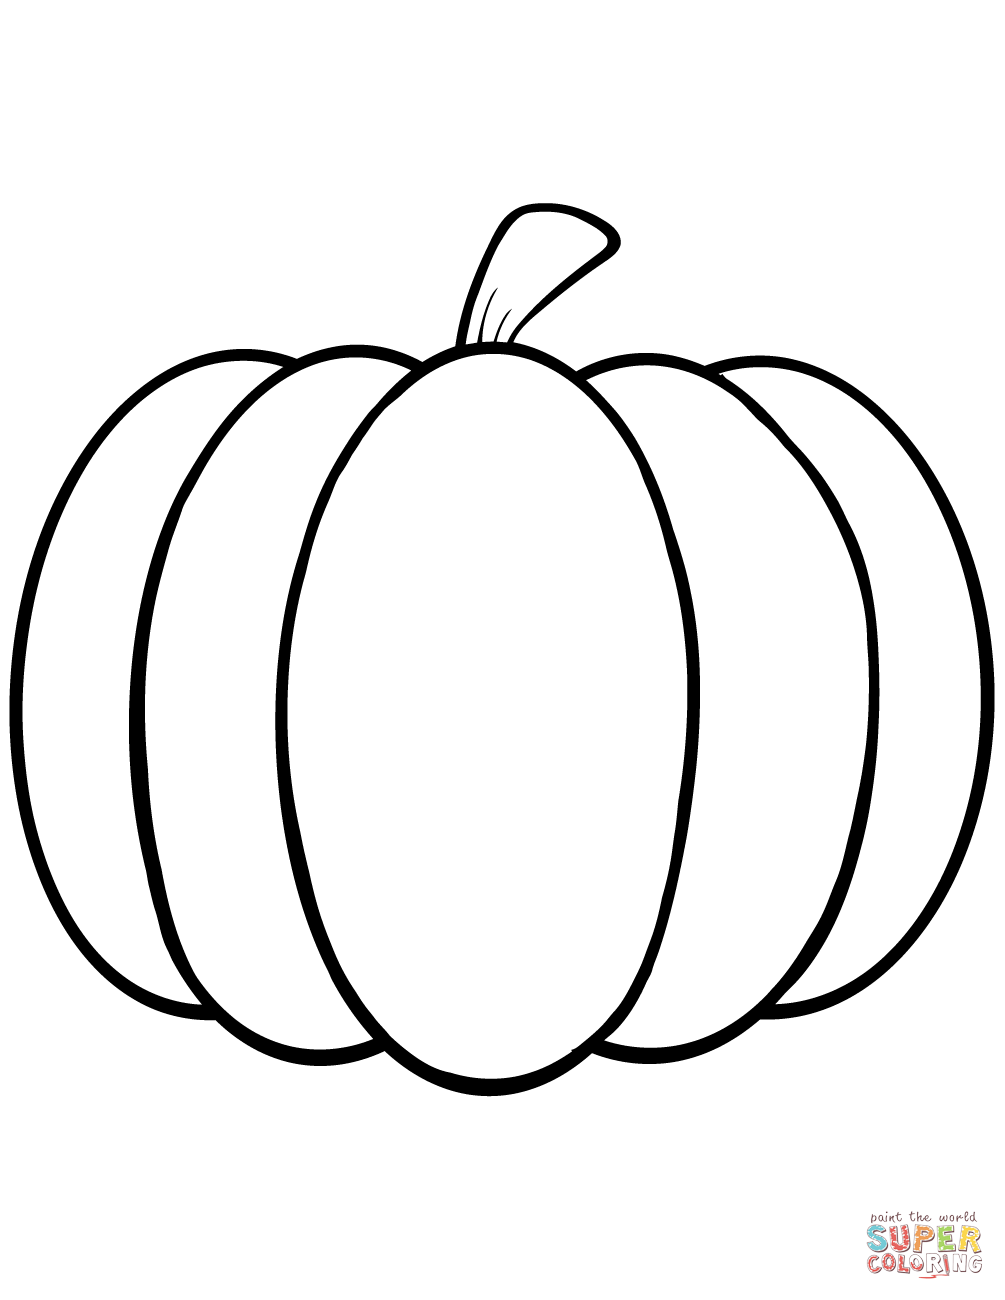 pumpkin colouring free printable pumpkin coloring pages for kids colouring pumpkin 1 1